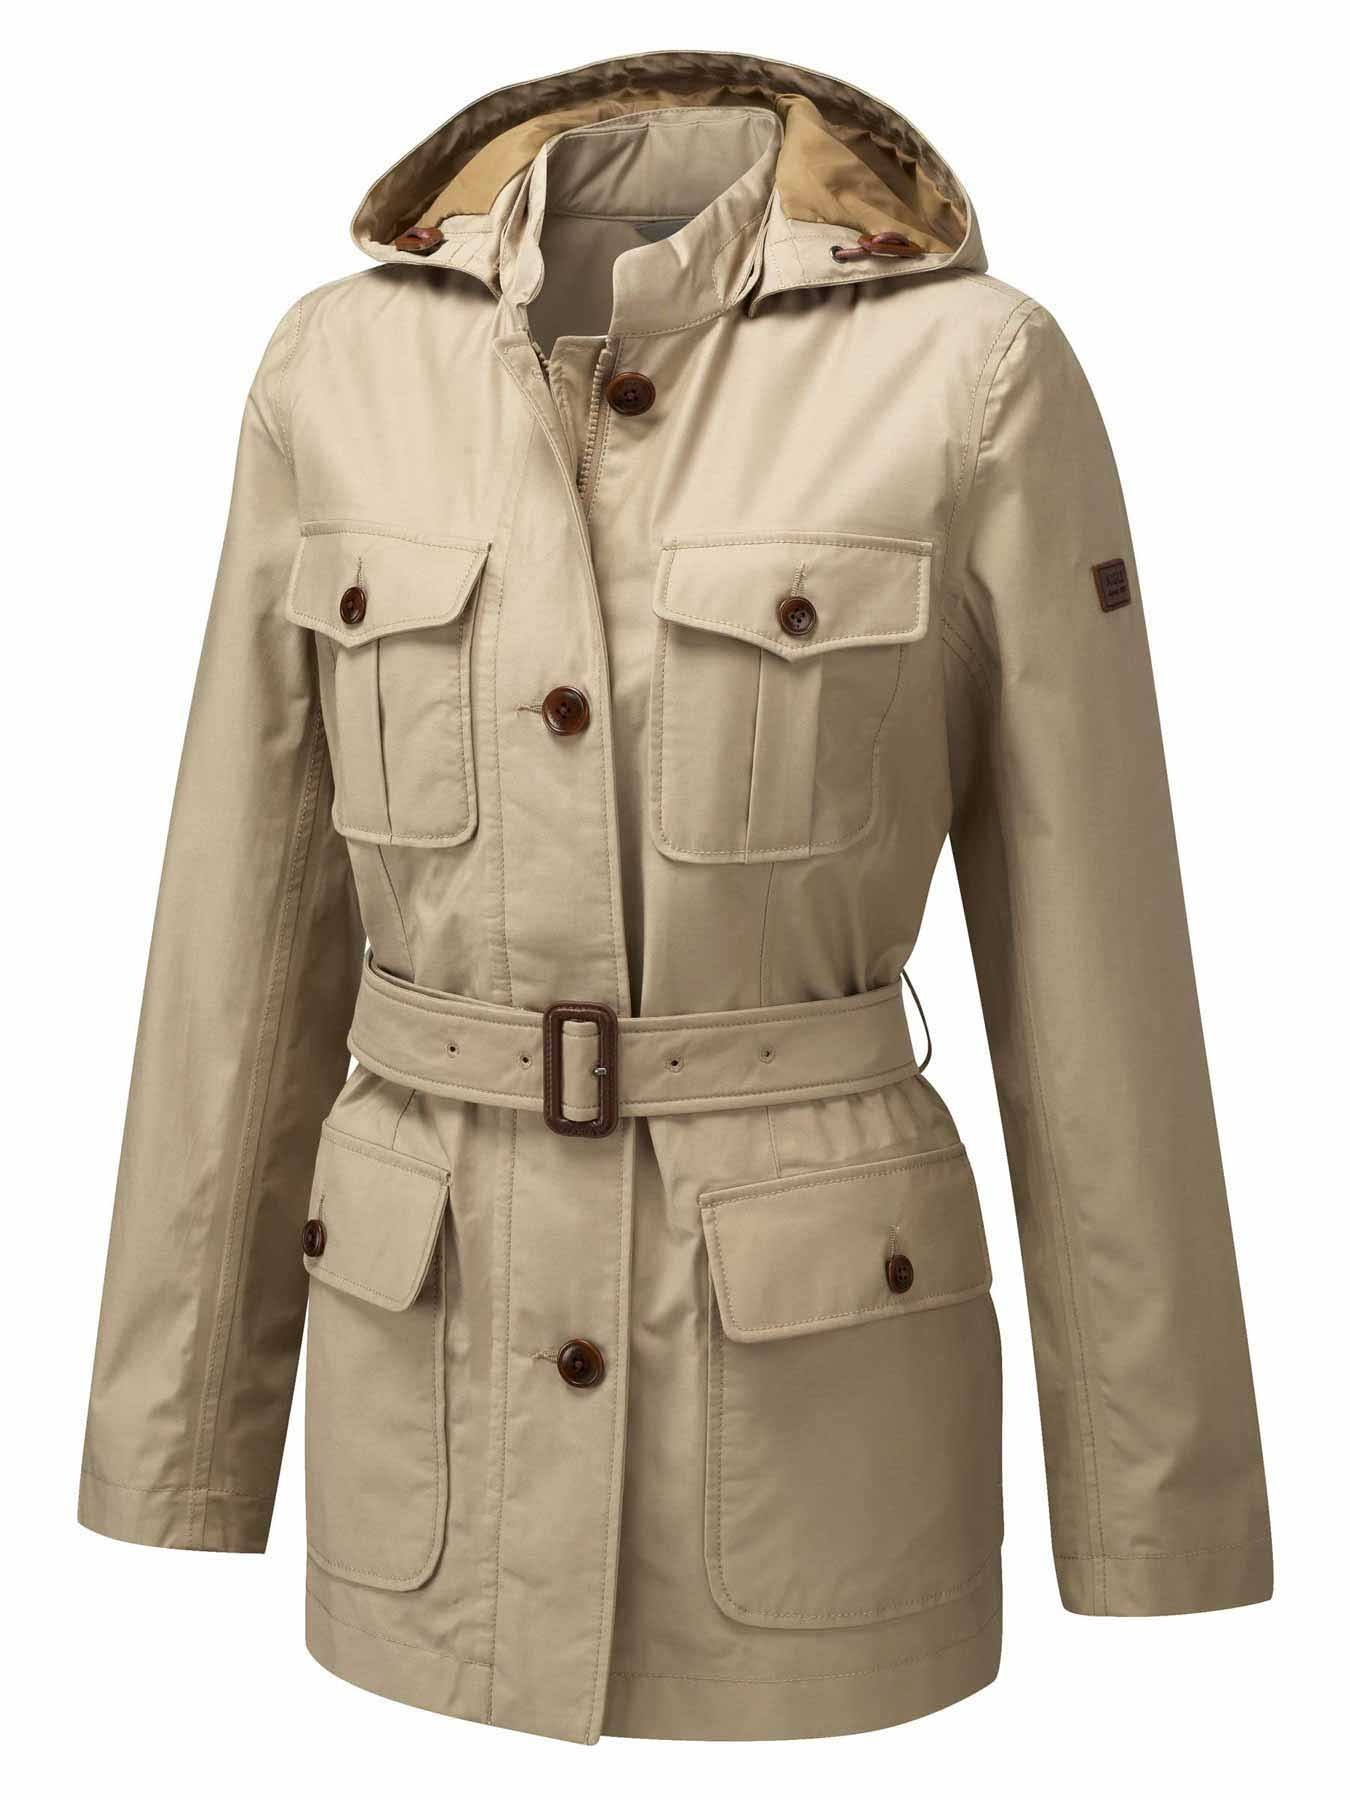 A safari jacket or bush jacket is a garment originally designed for the purpose of going on safari in the African bush. When paired with trousers or shorts, it becomes a safari suit. A safari jacket is commonly a lightweight cotton drill or lighter poplin jacket.